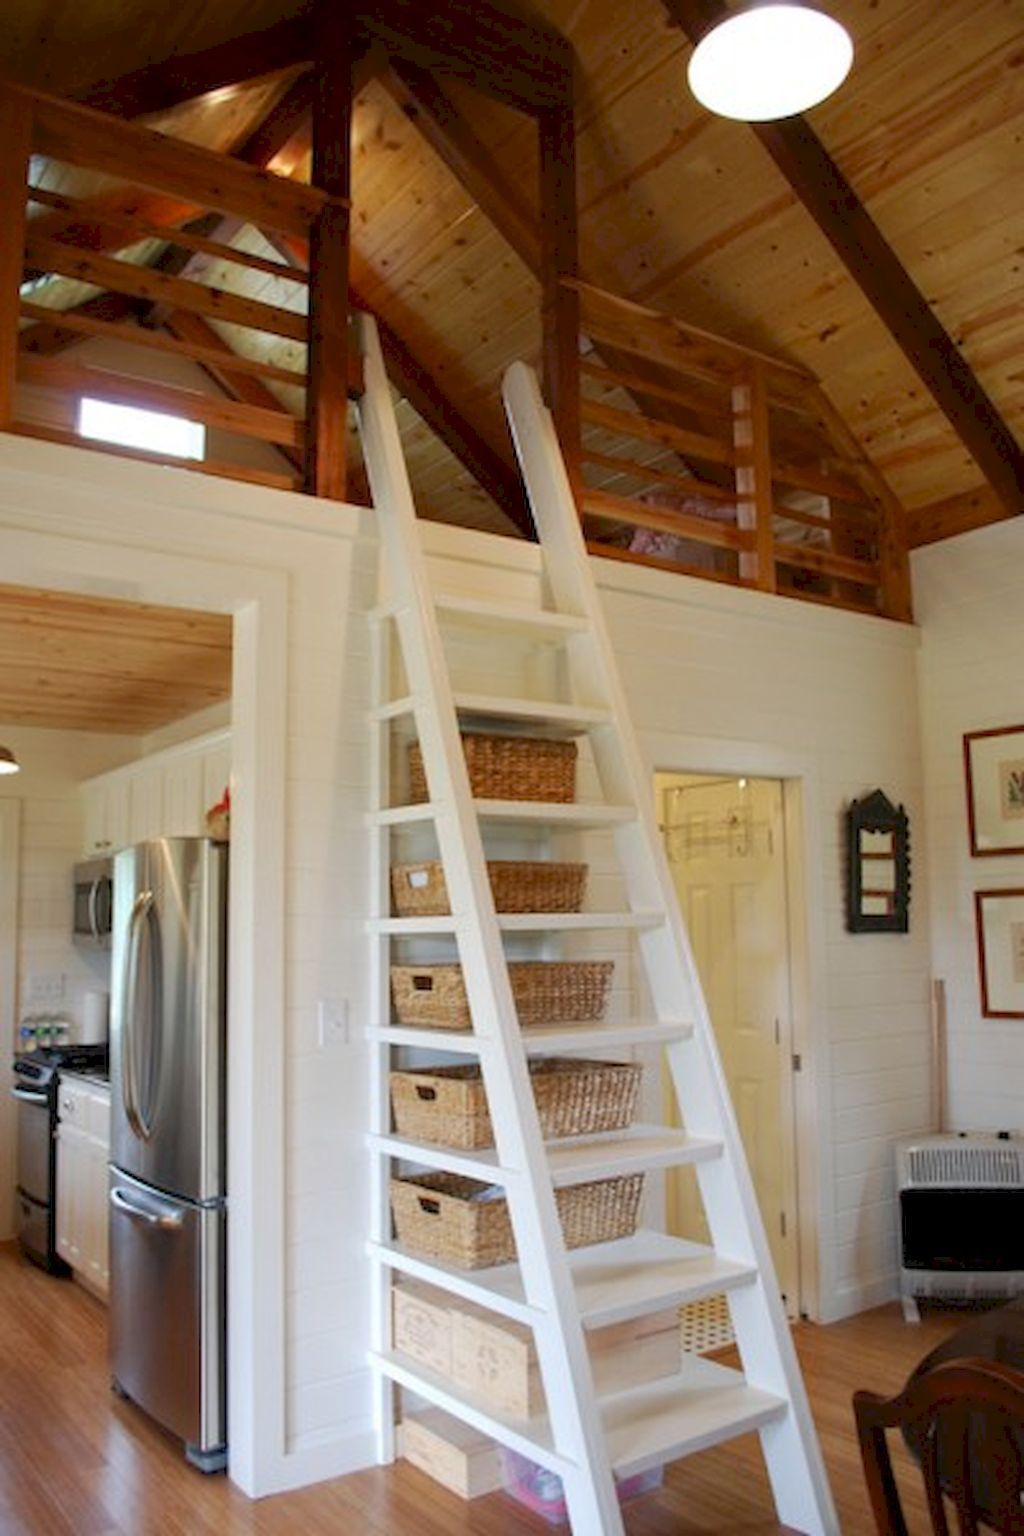 Incredible Loft Stair Ideas For Small Room 58